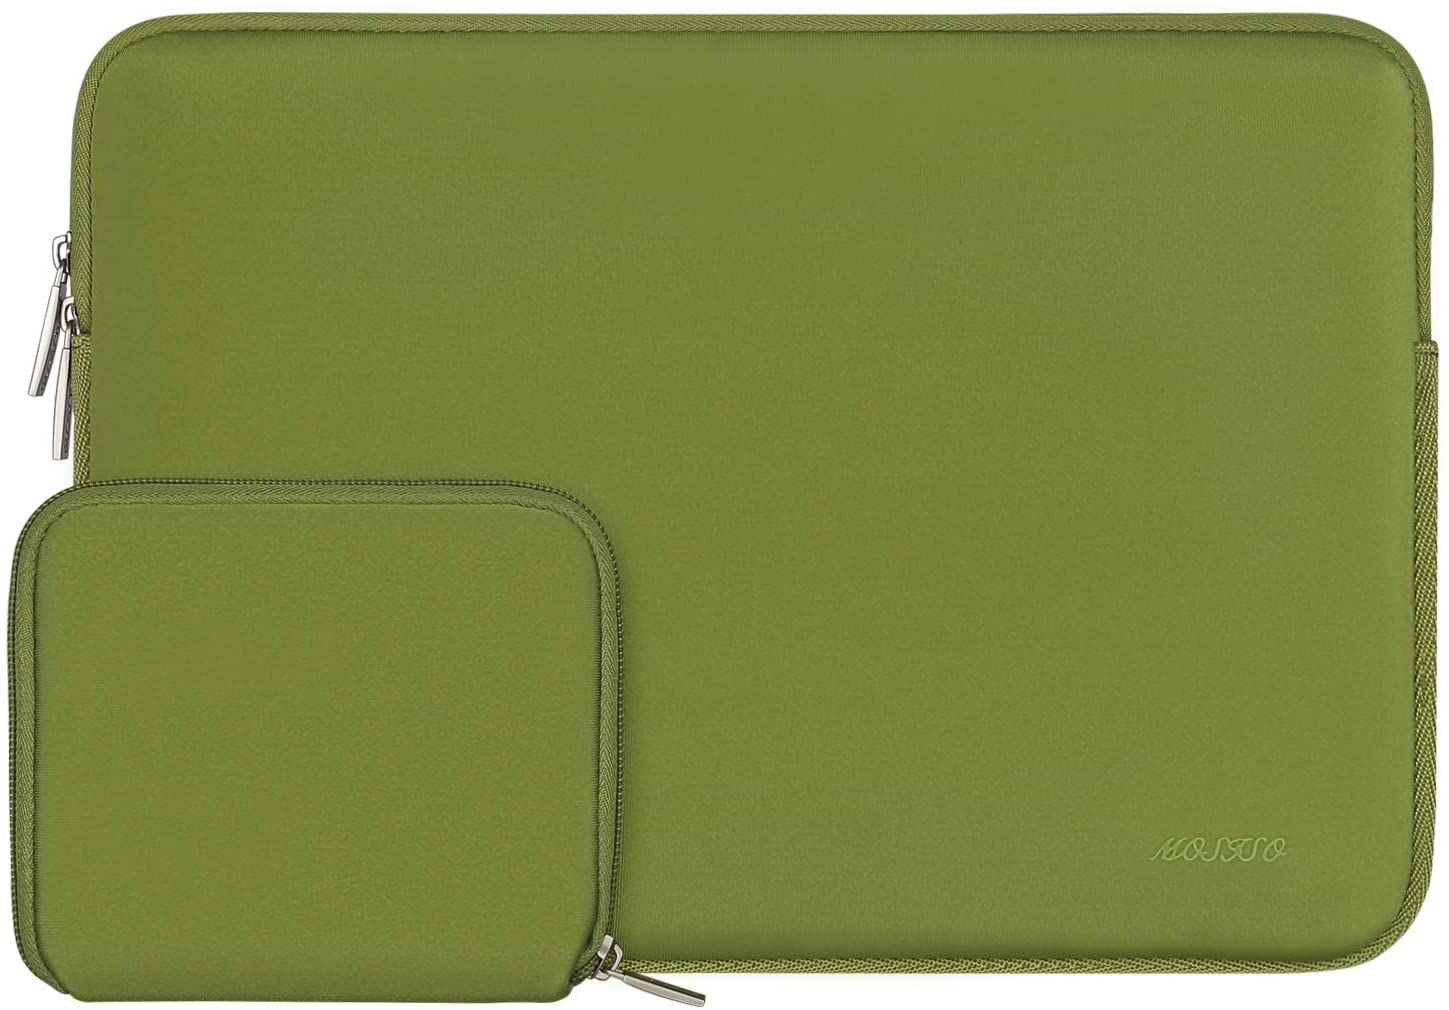 MOSISO Laptop Sleeve Compatible with 13-13.3 inch MacBook Pro, MacBook Air, Notebook Computer, Water Repellent Neoprene Bag with Small Case, Chartreuse